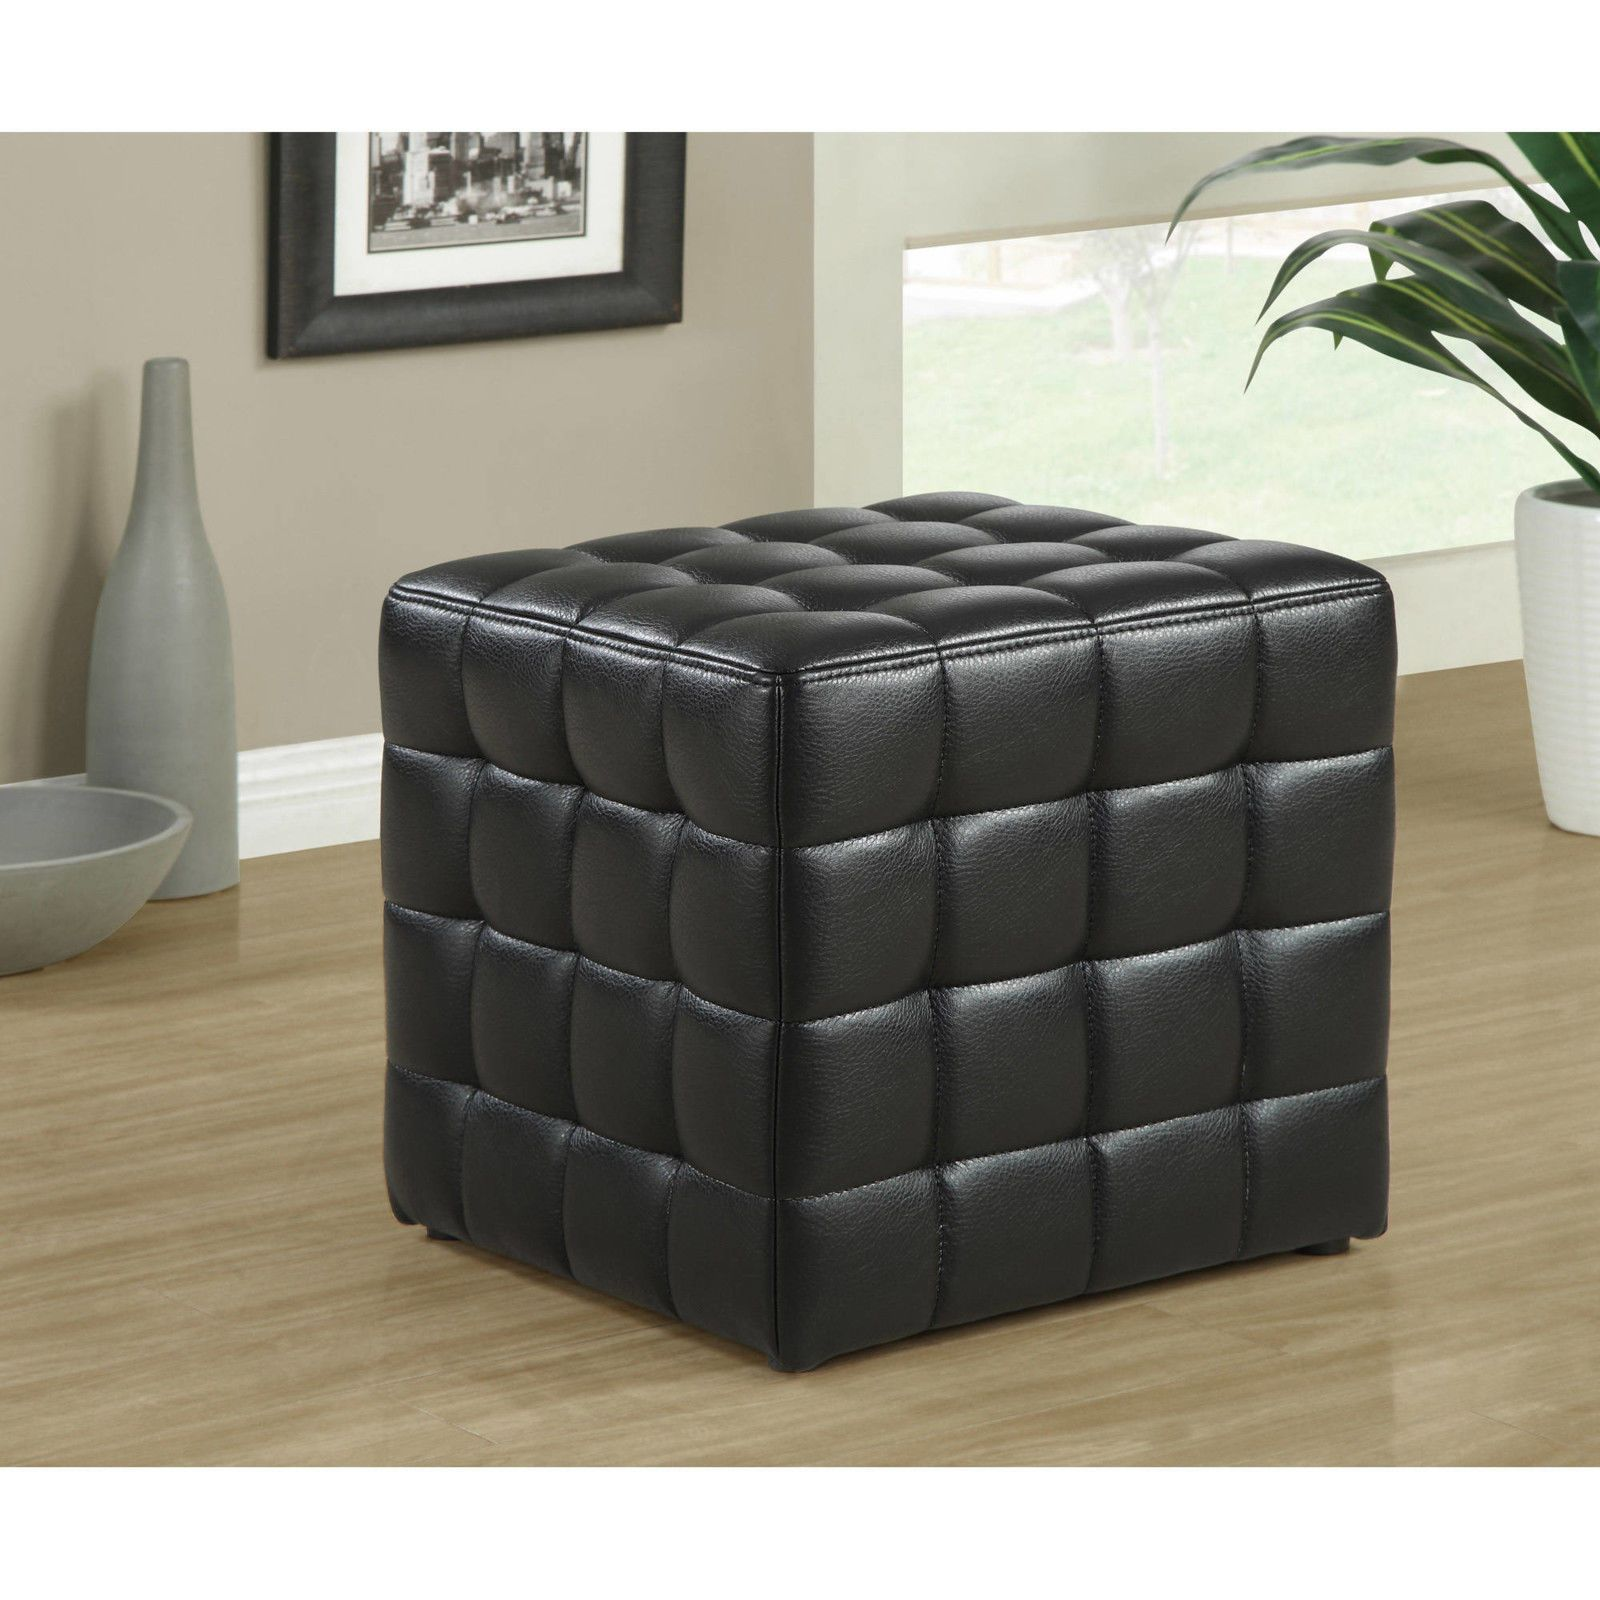 Black Leather Ottoman Chair Tufted Seat Foot Bed Room